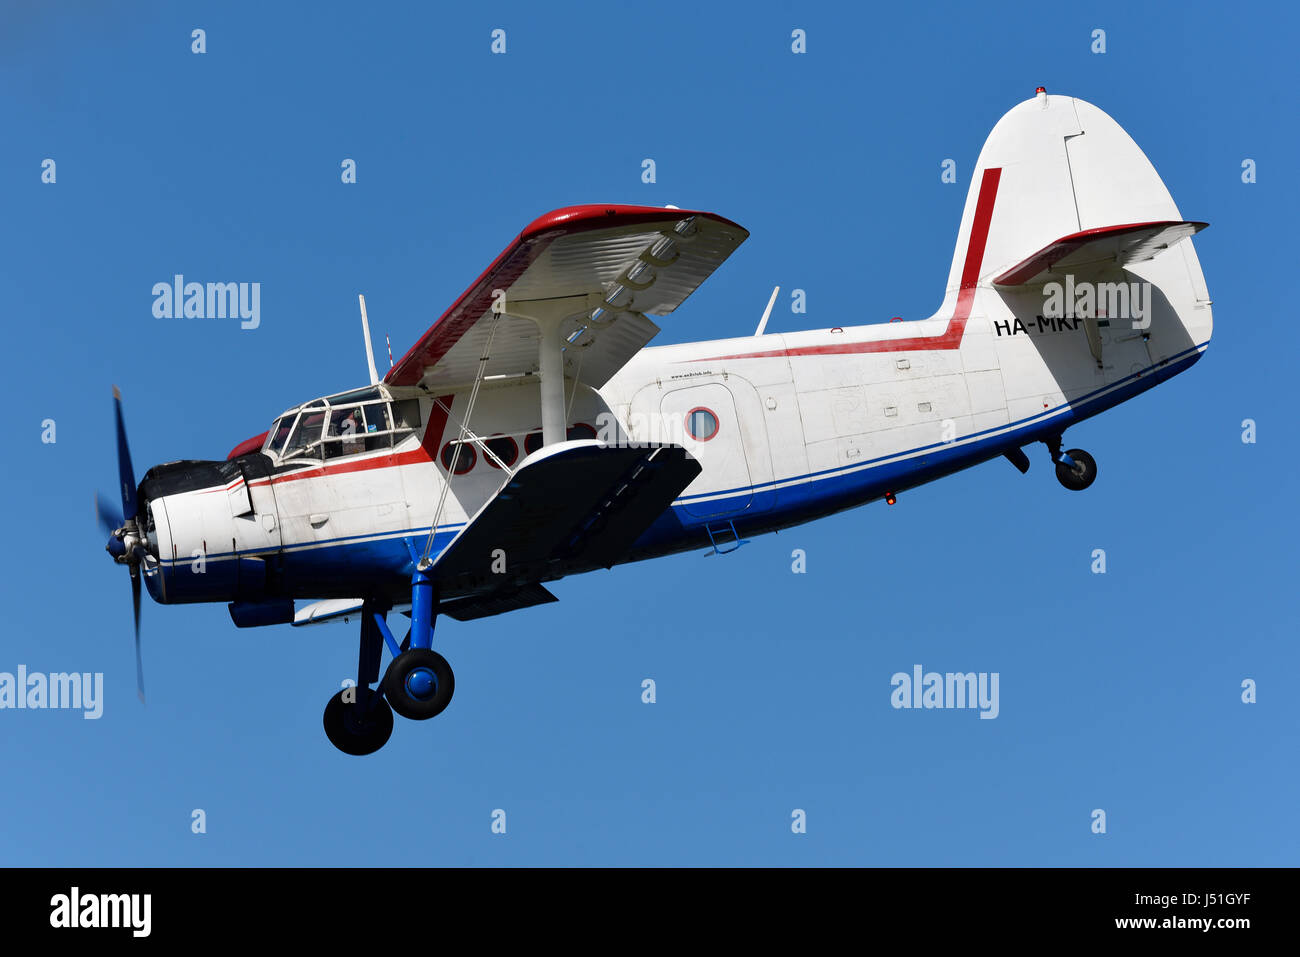 antonov-an-2-ha-mkf-of-antonov-an-2-club-at-the-abingdon-air-country-J51GYF.jpg